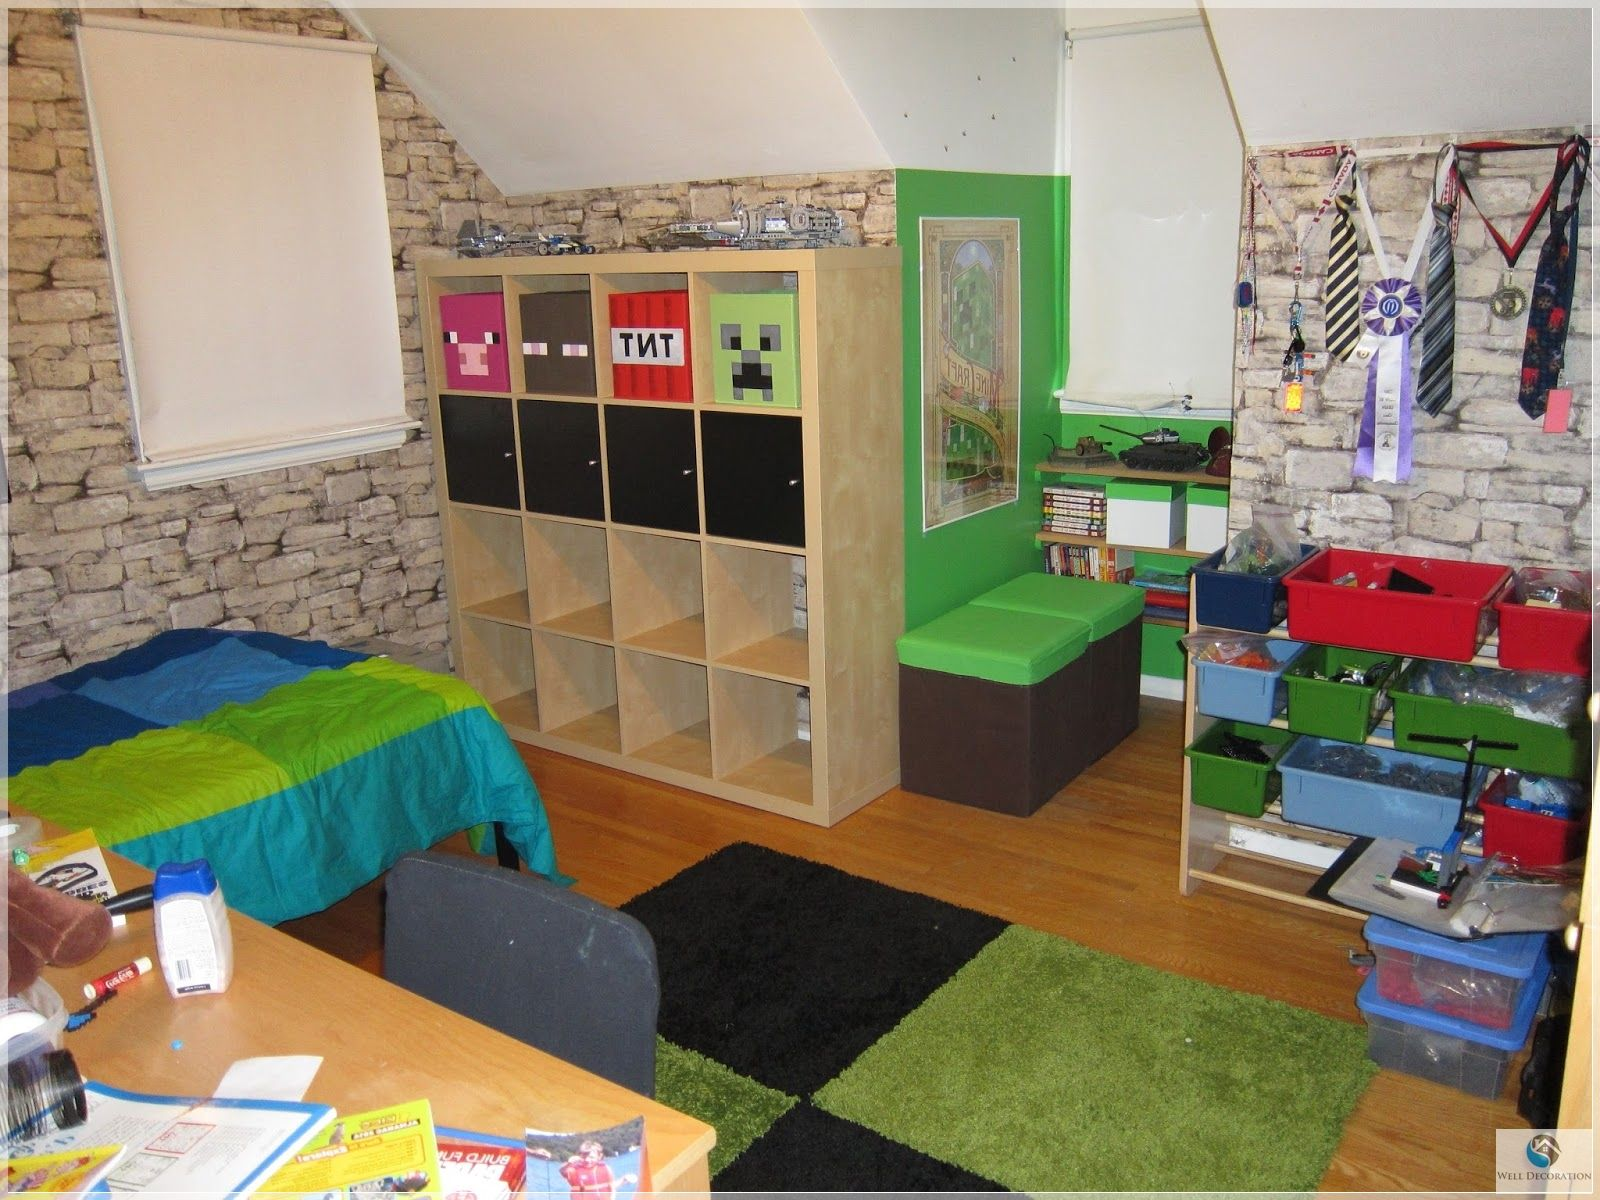 themed bedroom 3 decorating your kid s room with a minecraft theme themed bedroom 3 decorating your kid s room with a minecraft theme images